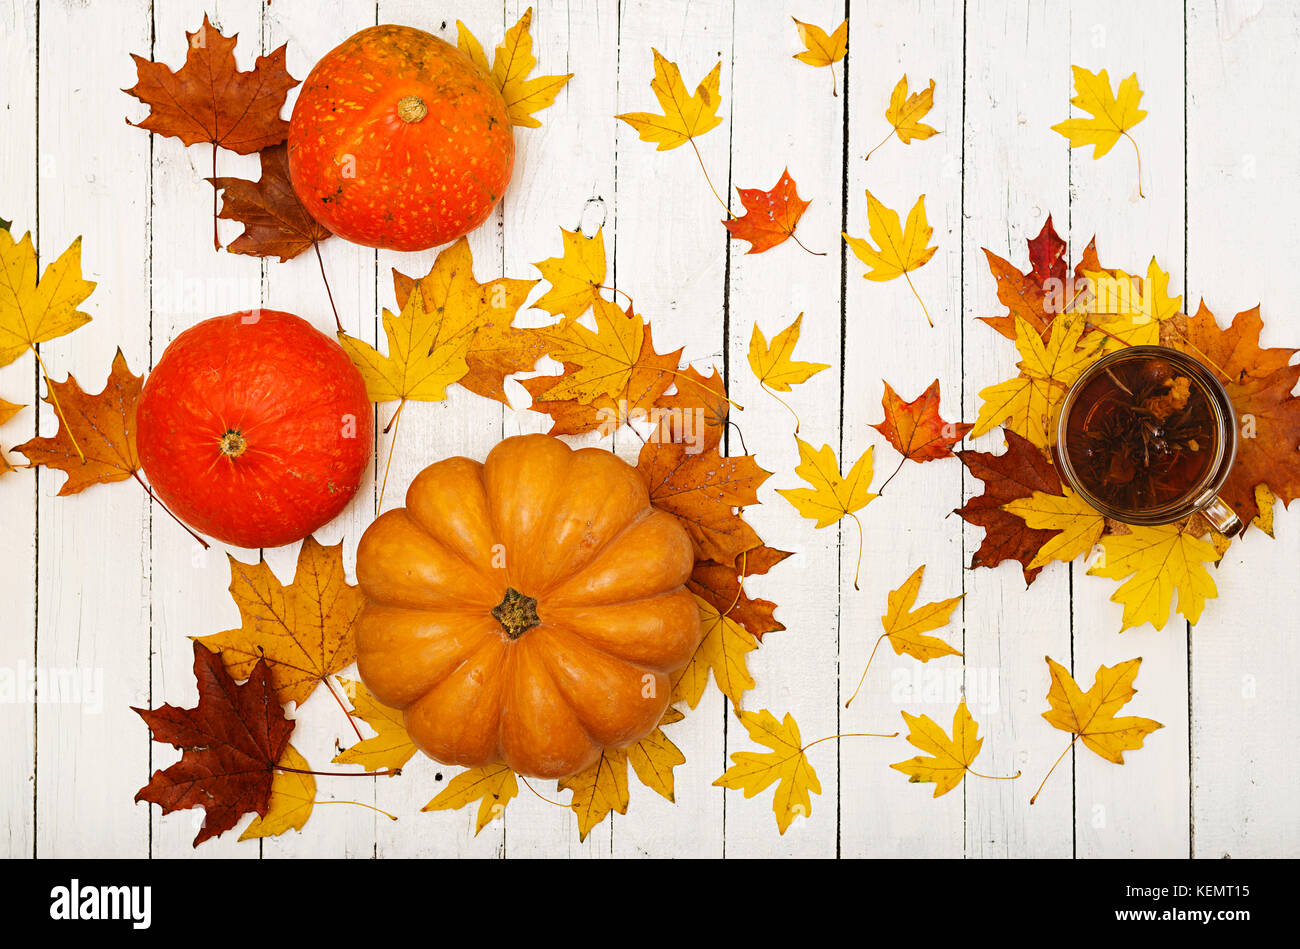 Thanksgiving background: Pumpkins and fallen leaves on white wooden background.  Halloween or Thanksgiving day or - Stock Image